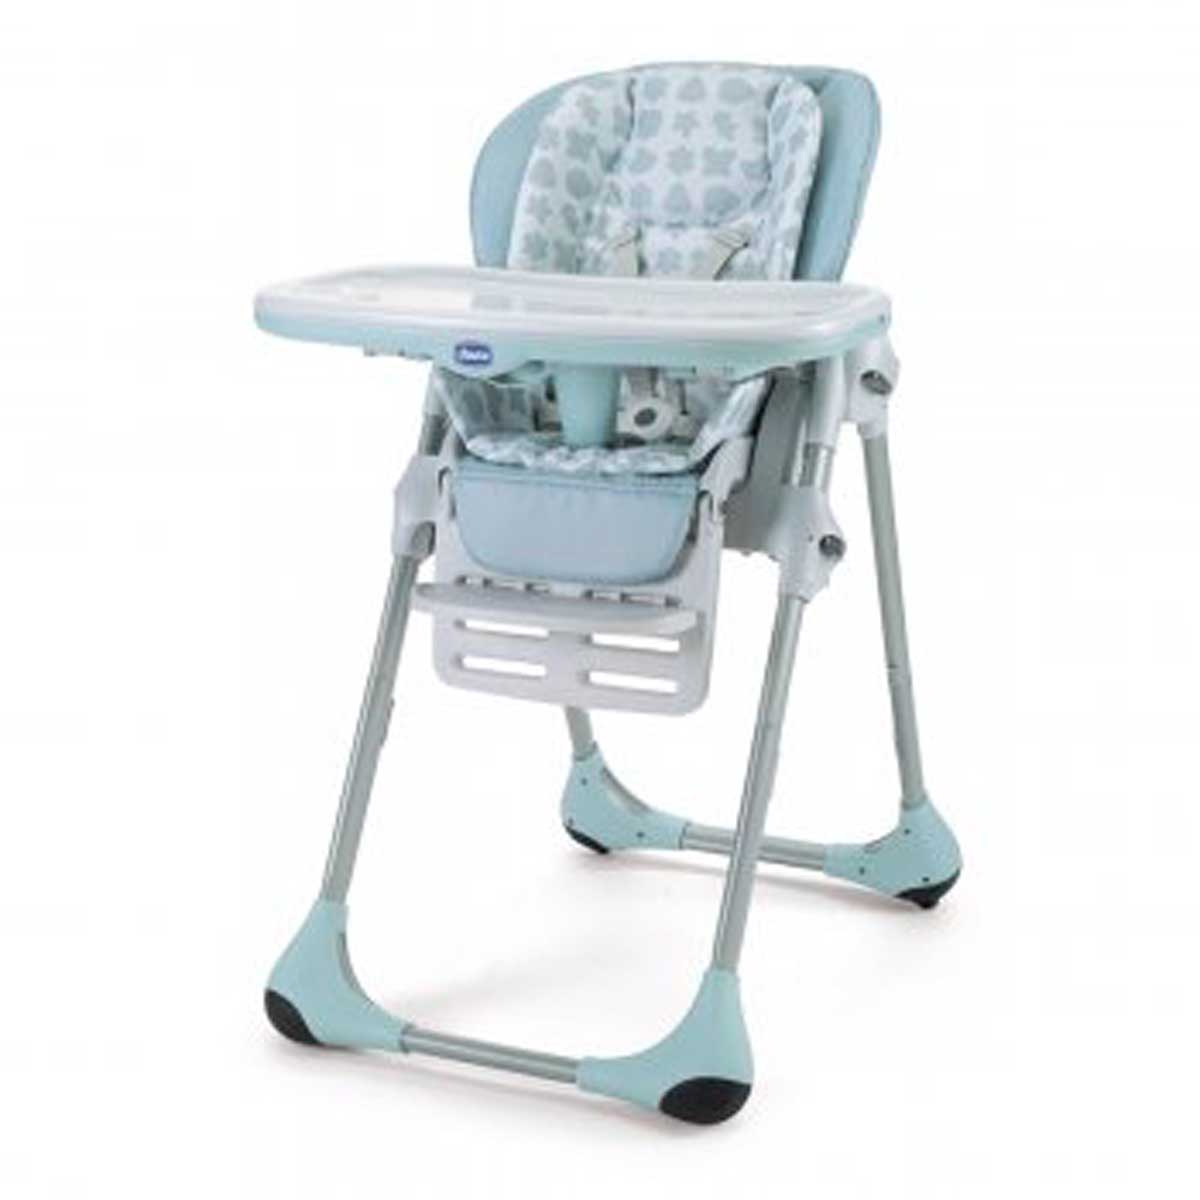 chicco hochstuhl high chair polly 2 in 1 design 2014 farbe w hlbar neu ebay. Black Bedroom Furniture Sets. Home Design Ideas